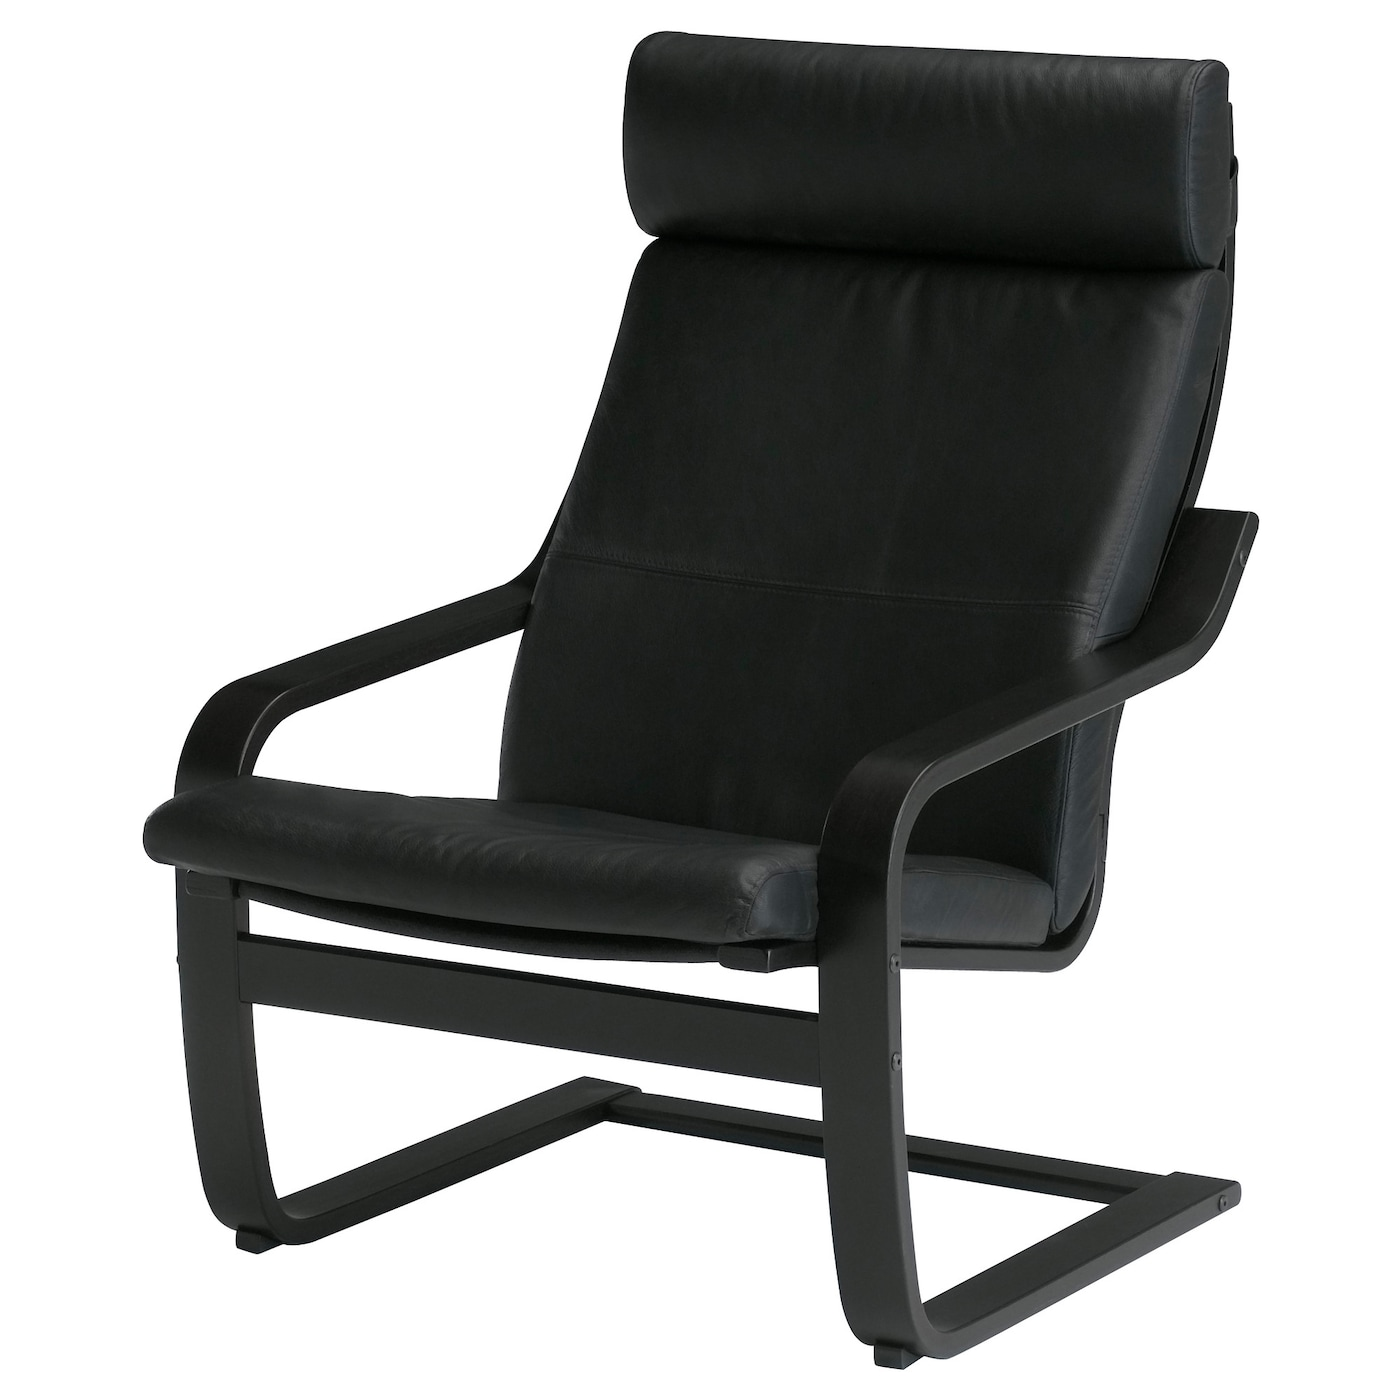 IKEA POÄNG armchair Layer-glued bent beech frame gives comfortable resilience.  sc 1 st  Ikea & Leather Armchairs u0026 Leather Recliner Chair | IKEA islam-shia.org